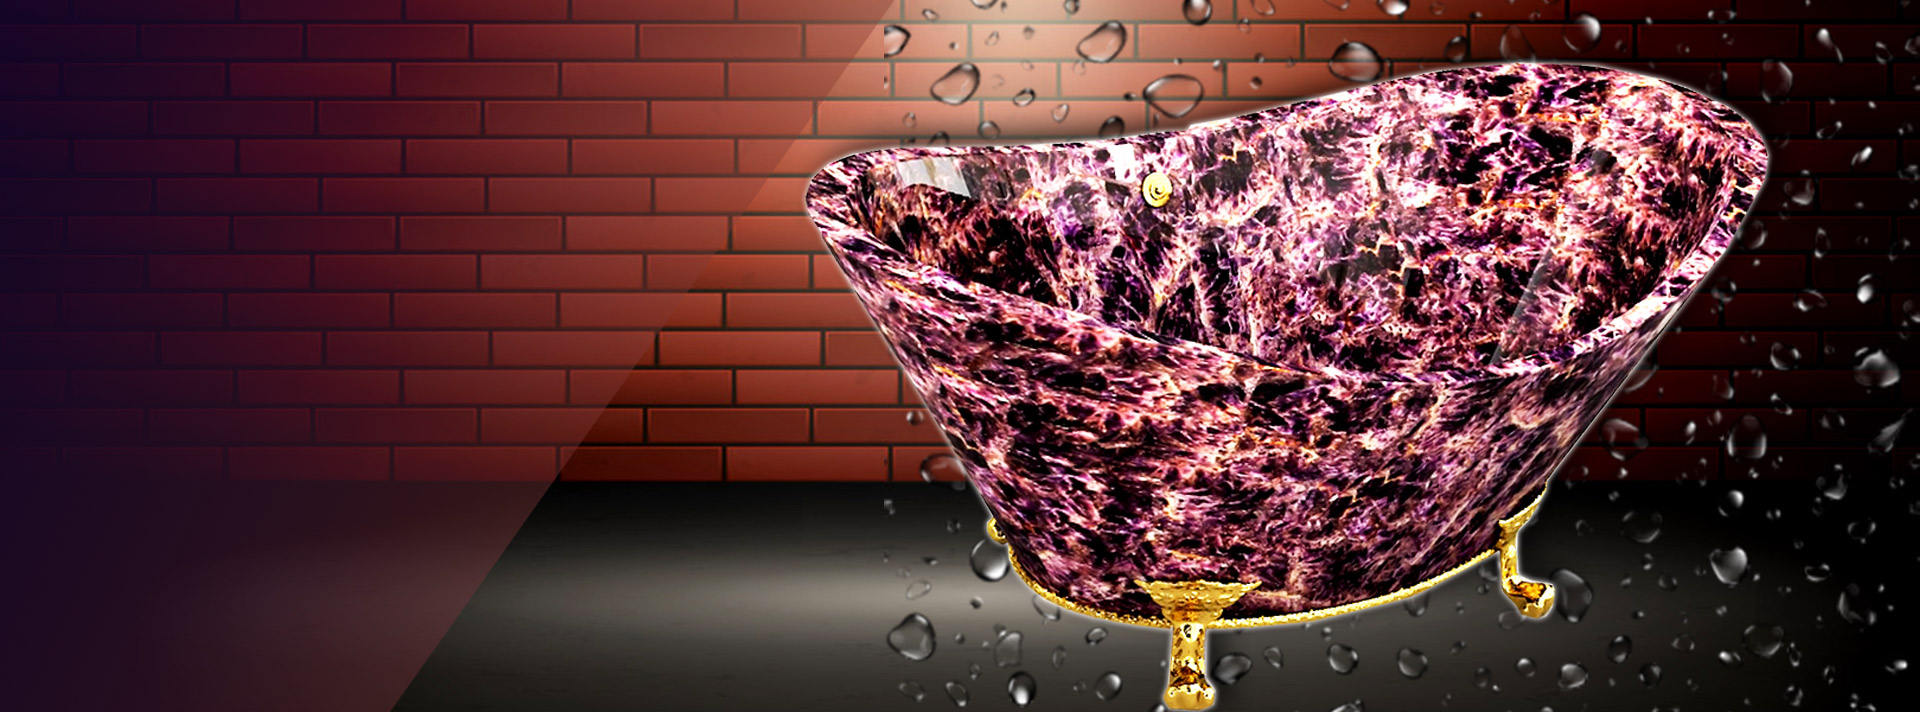 freestanding gemstone bath tub